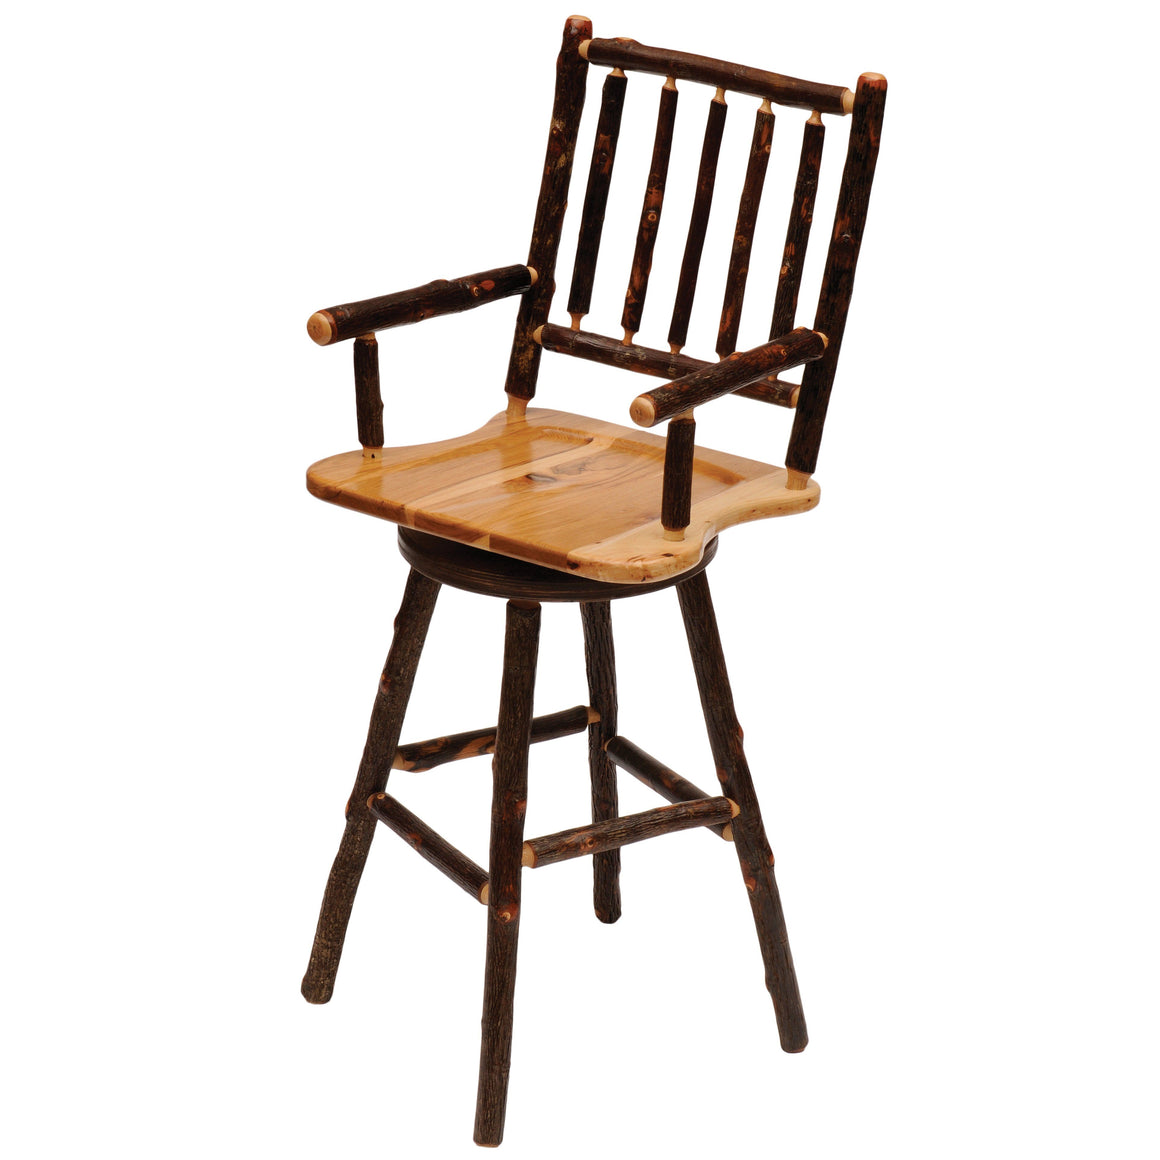 "Natural Hickory Log Swivel Bar Stool With Arms - 30"" high - Standard Finish-Rustic Deco Incorporated"